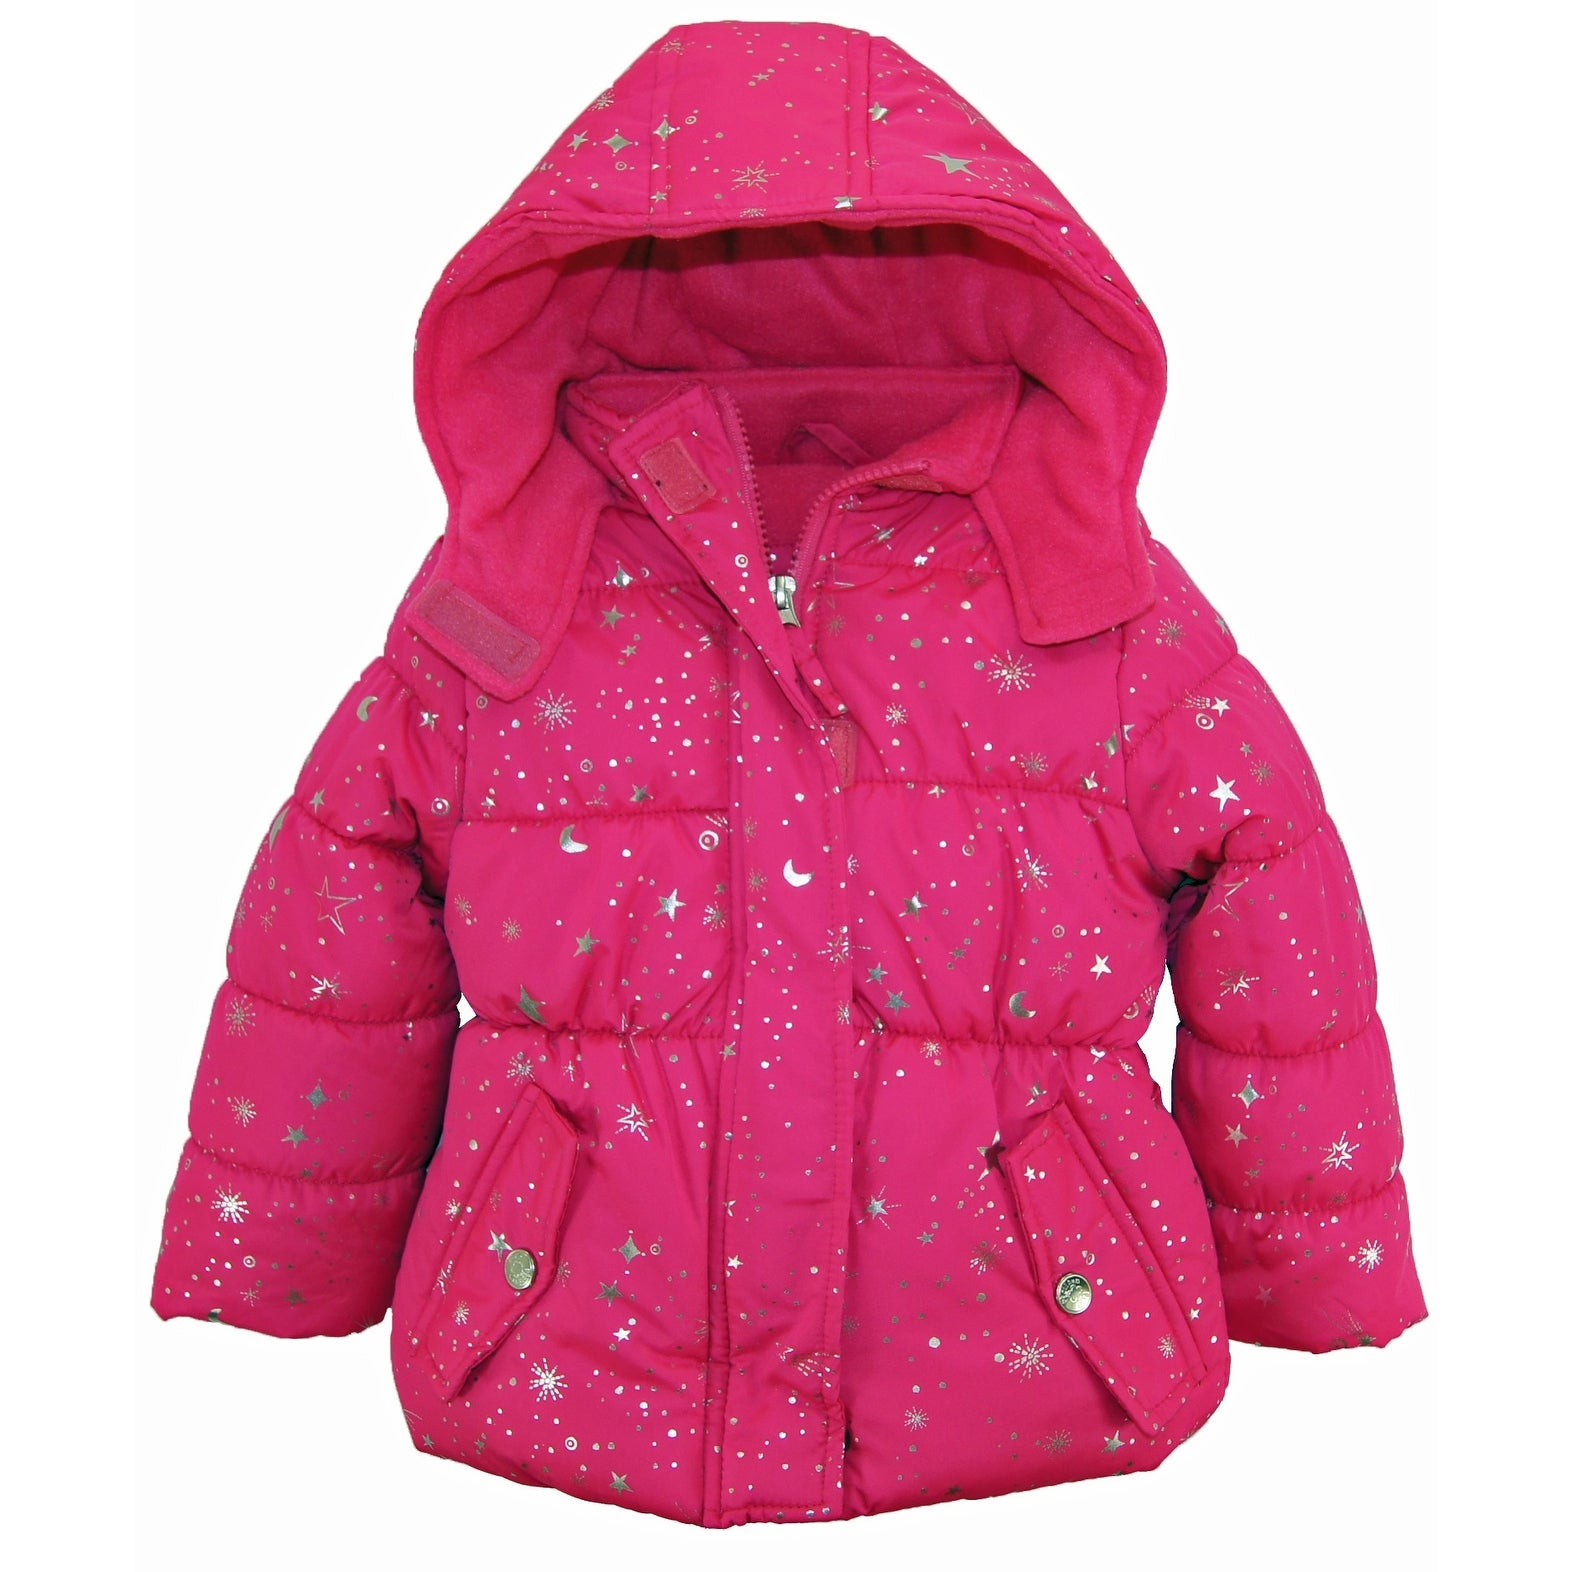 girls product shoes silver starts on over platinum overstock pink jacket orders coat with winter shipping puffer print clothing free little